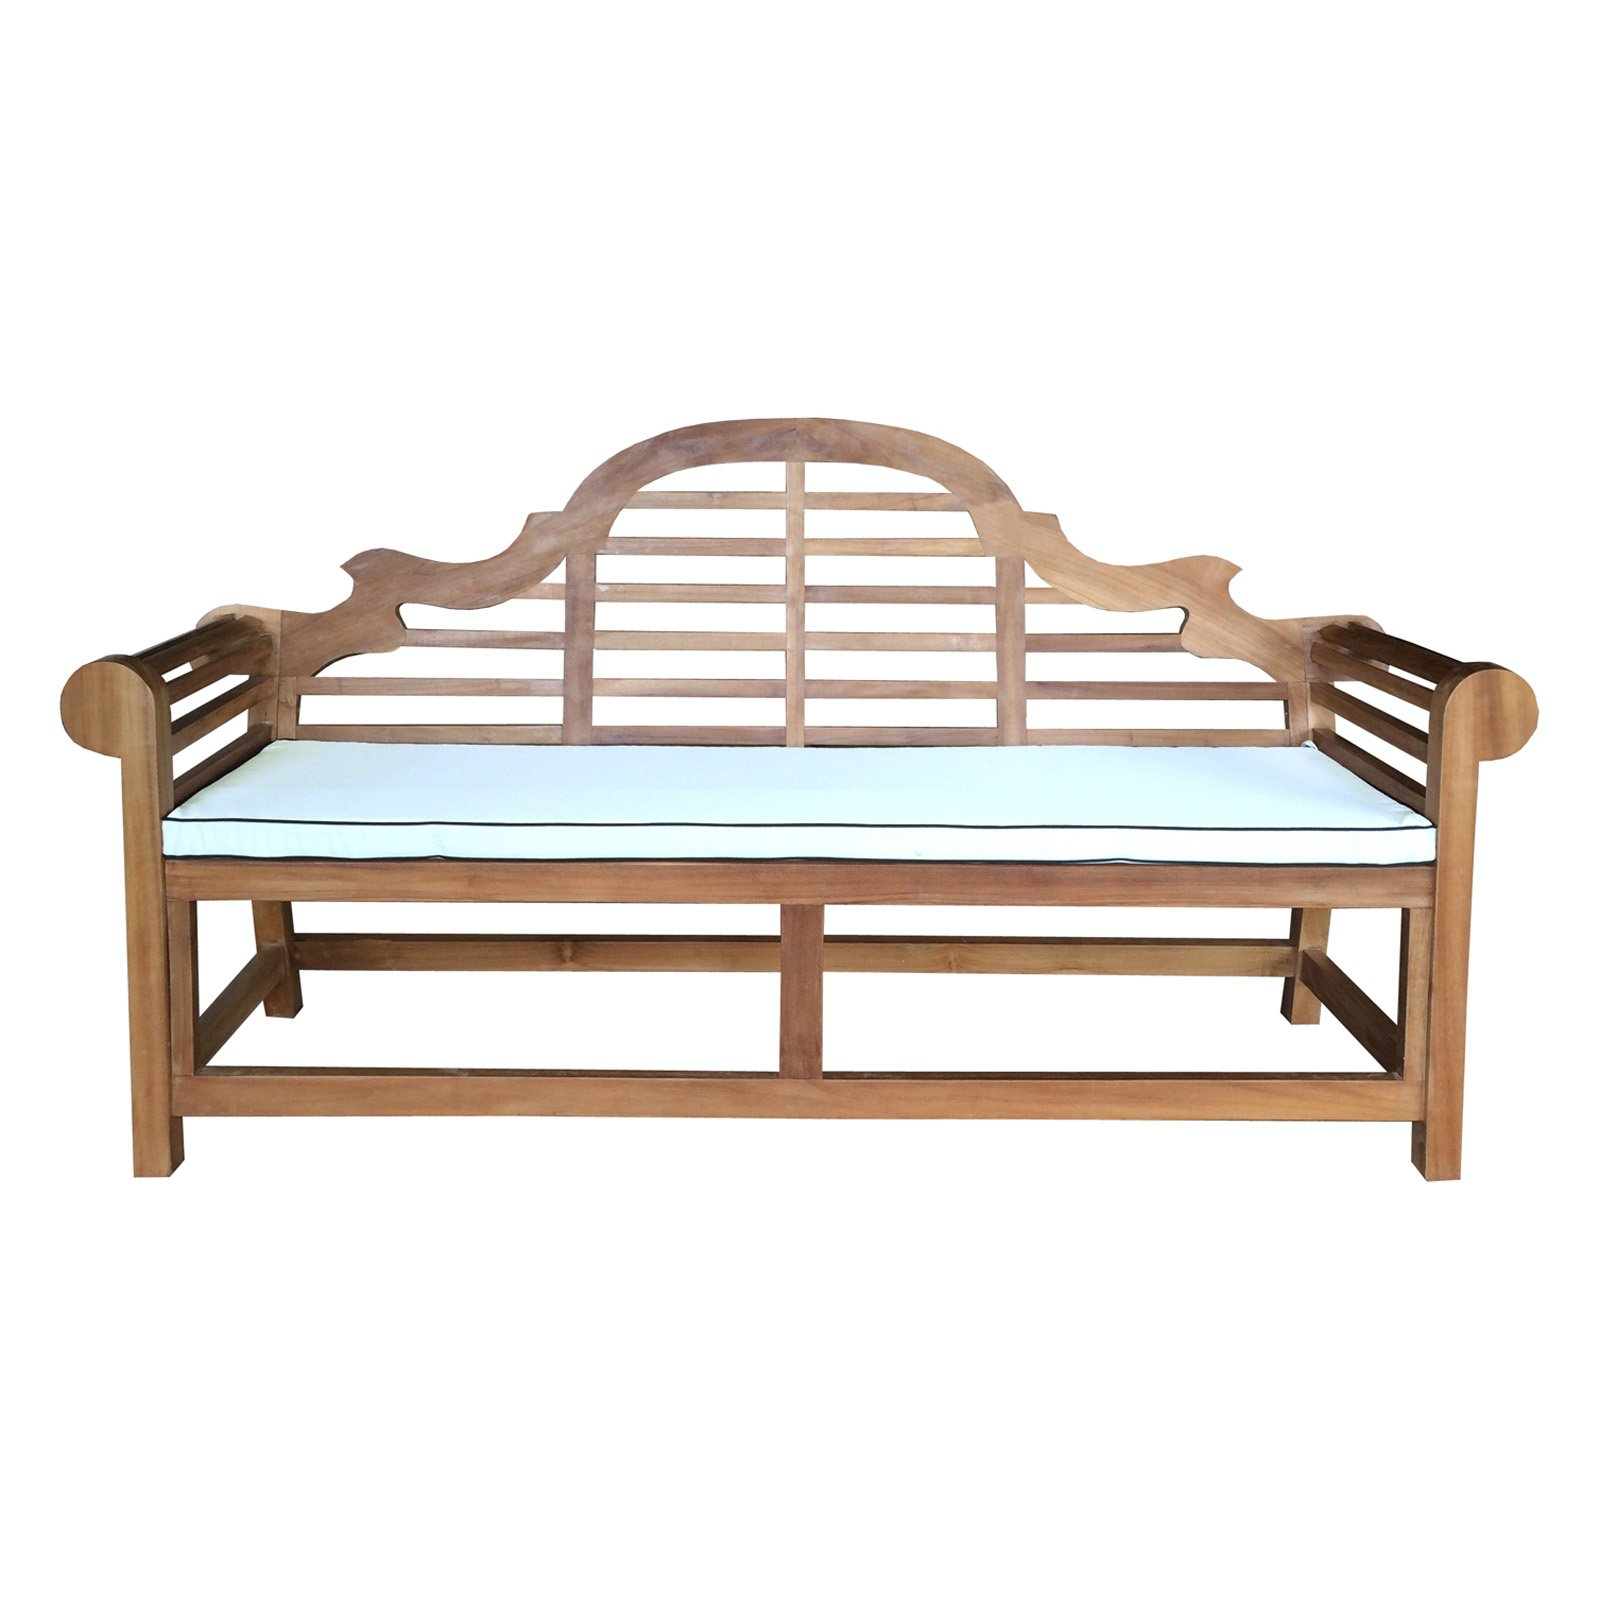 Wondrous Chic Teak Lutyens Outdoor Bench Cushion Products In 2019 Ibusinesslaw Wood Chair Design Ideas Ibusinesslaworg